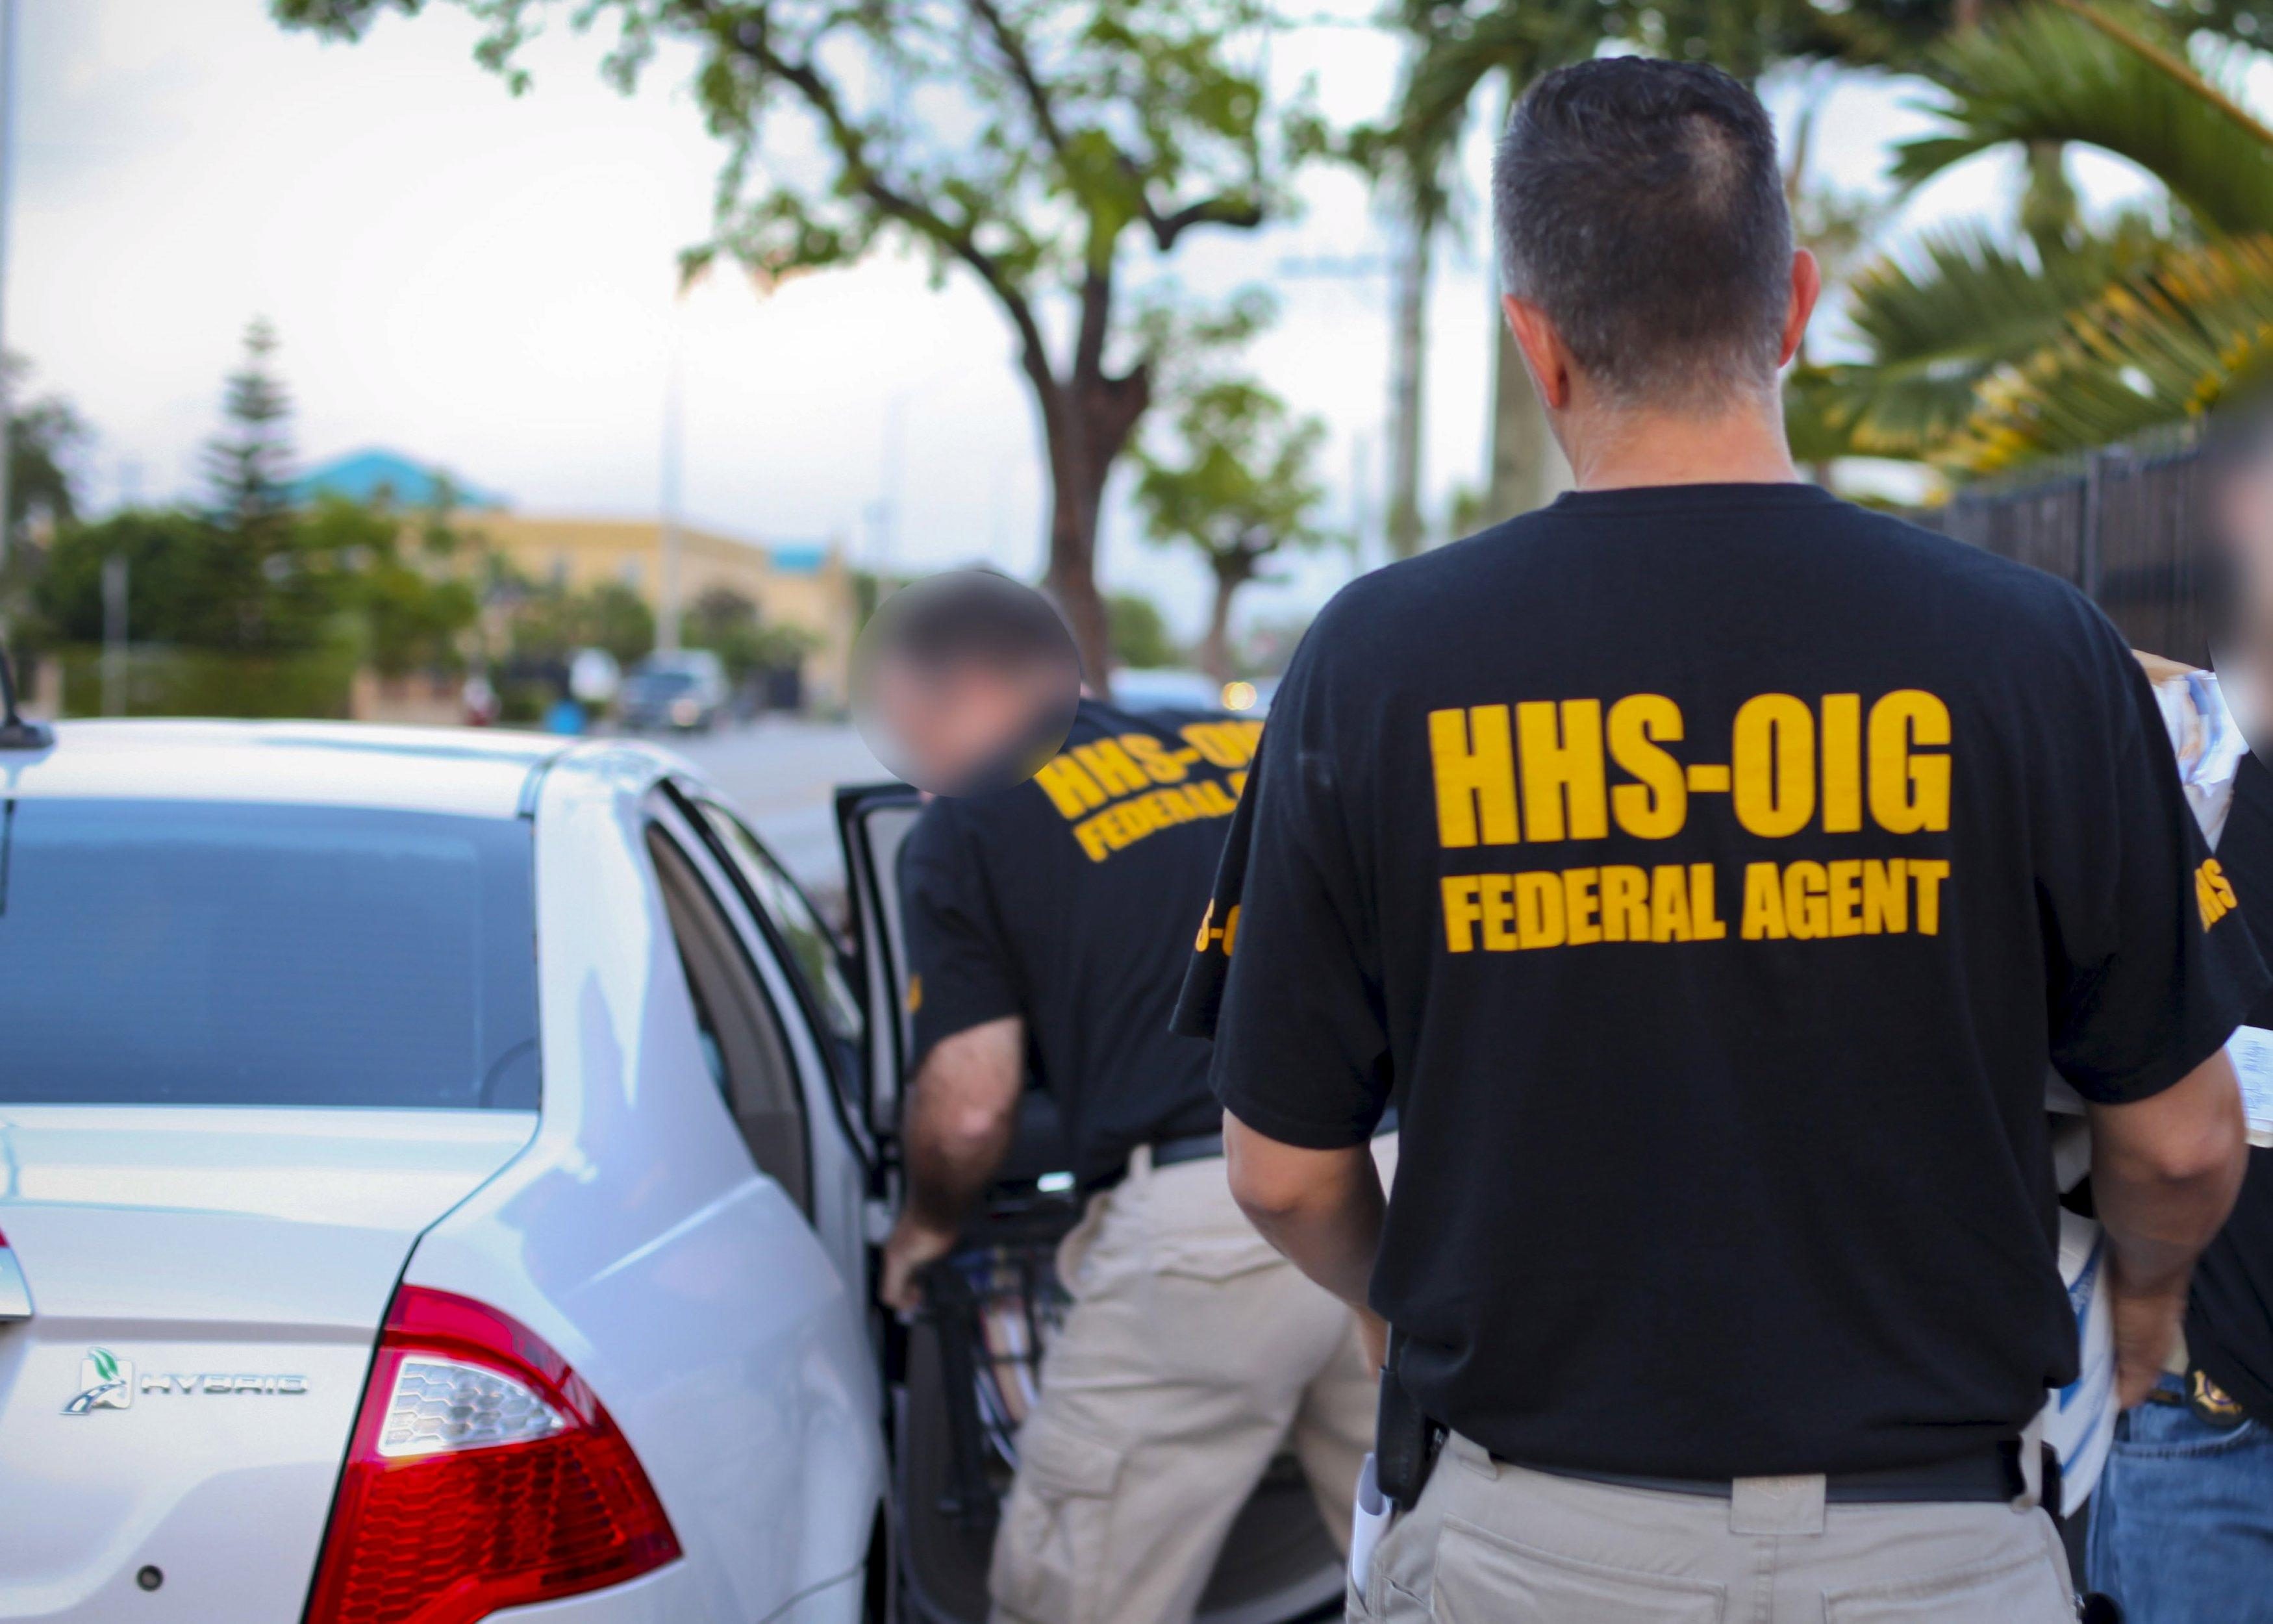 Agents from the U.S. Department of Health and Human Services (HHS) Office of the Inspector General are pictured loading evidence, in this undated photograph provided on April 28, 2015. The HHS Office of the Inspector General investigates fraud, waste and abuse in Medicare. Picture digitally masked at source. To match Special Report USA-MEDICAID/FRAUD REUTERS/U.S. Department of Health and Human Services Office of the Inspector General/Handout via Reuters ATTENTION EDITORS - THIS PICTURE WAS PROVIDED BY A THIRD PARTY. REUTERS IS UNABLE TO INDEPENDENTLY VERIFY THE AUTHENTICITY, CONTENT, LOCATION OR DATE OF THIS IMAGE. FOR EDITORIAL USE ONLY. NOT FOR SALE FOR MARKETING OR ADVERTISING CAMPAIGNS. THIS PICTURE IS DISTRIBUTED EXACTLY AS RECEIVED BY REUTERS, AS A SERVICE TO CLIENTS. PICTURE DIGITALLY ALTERED AT SOURCE.